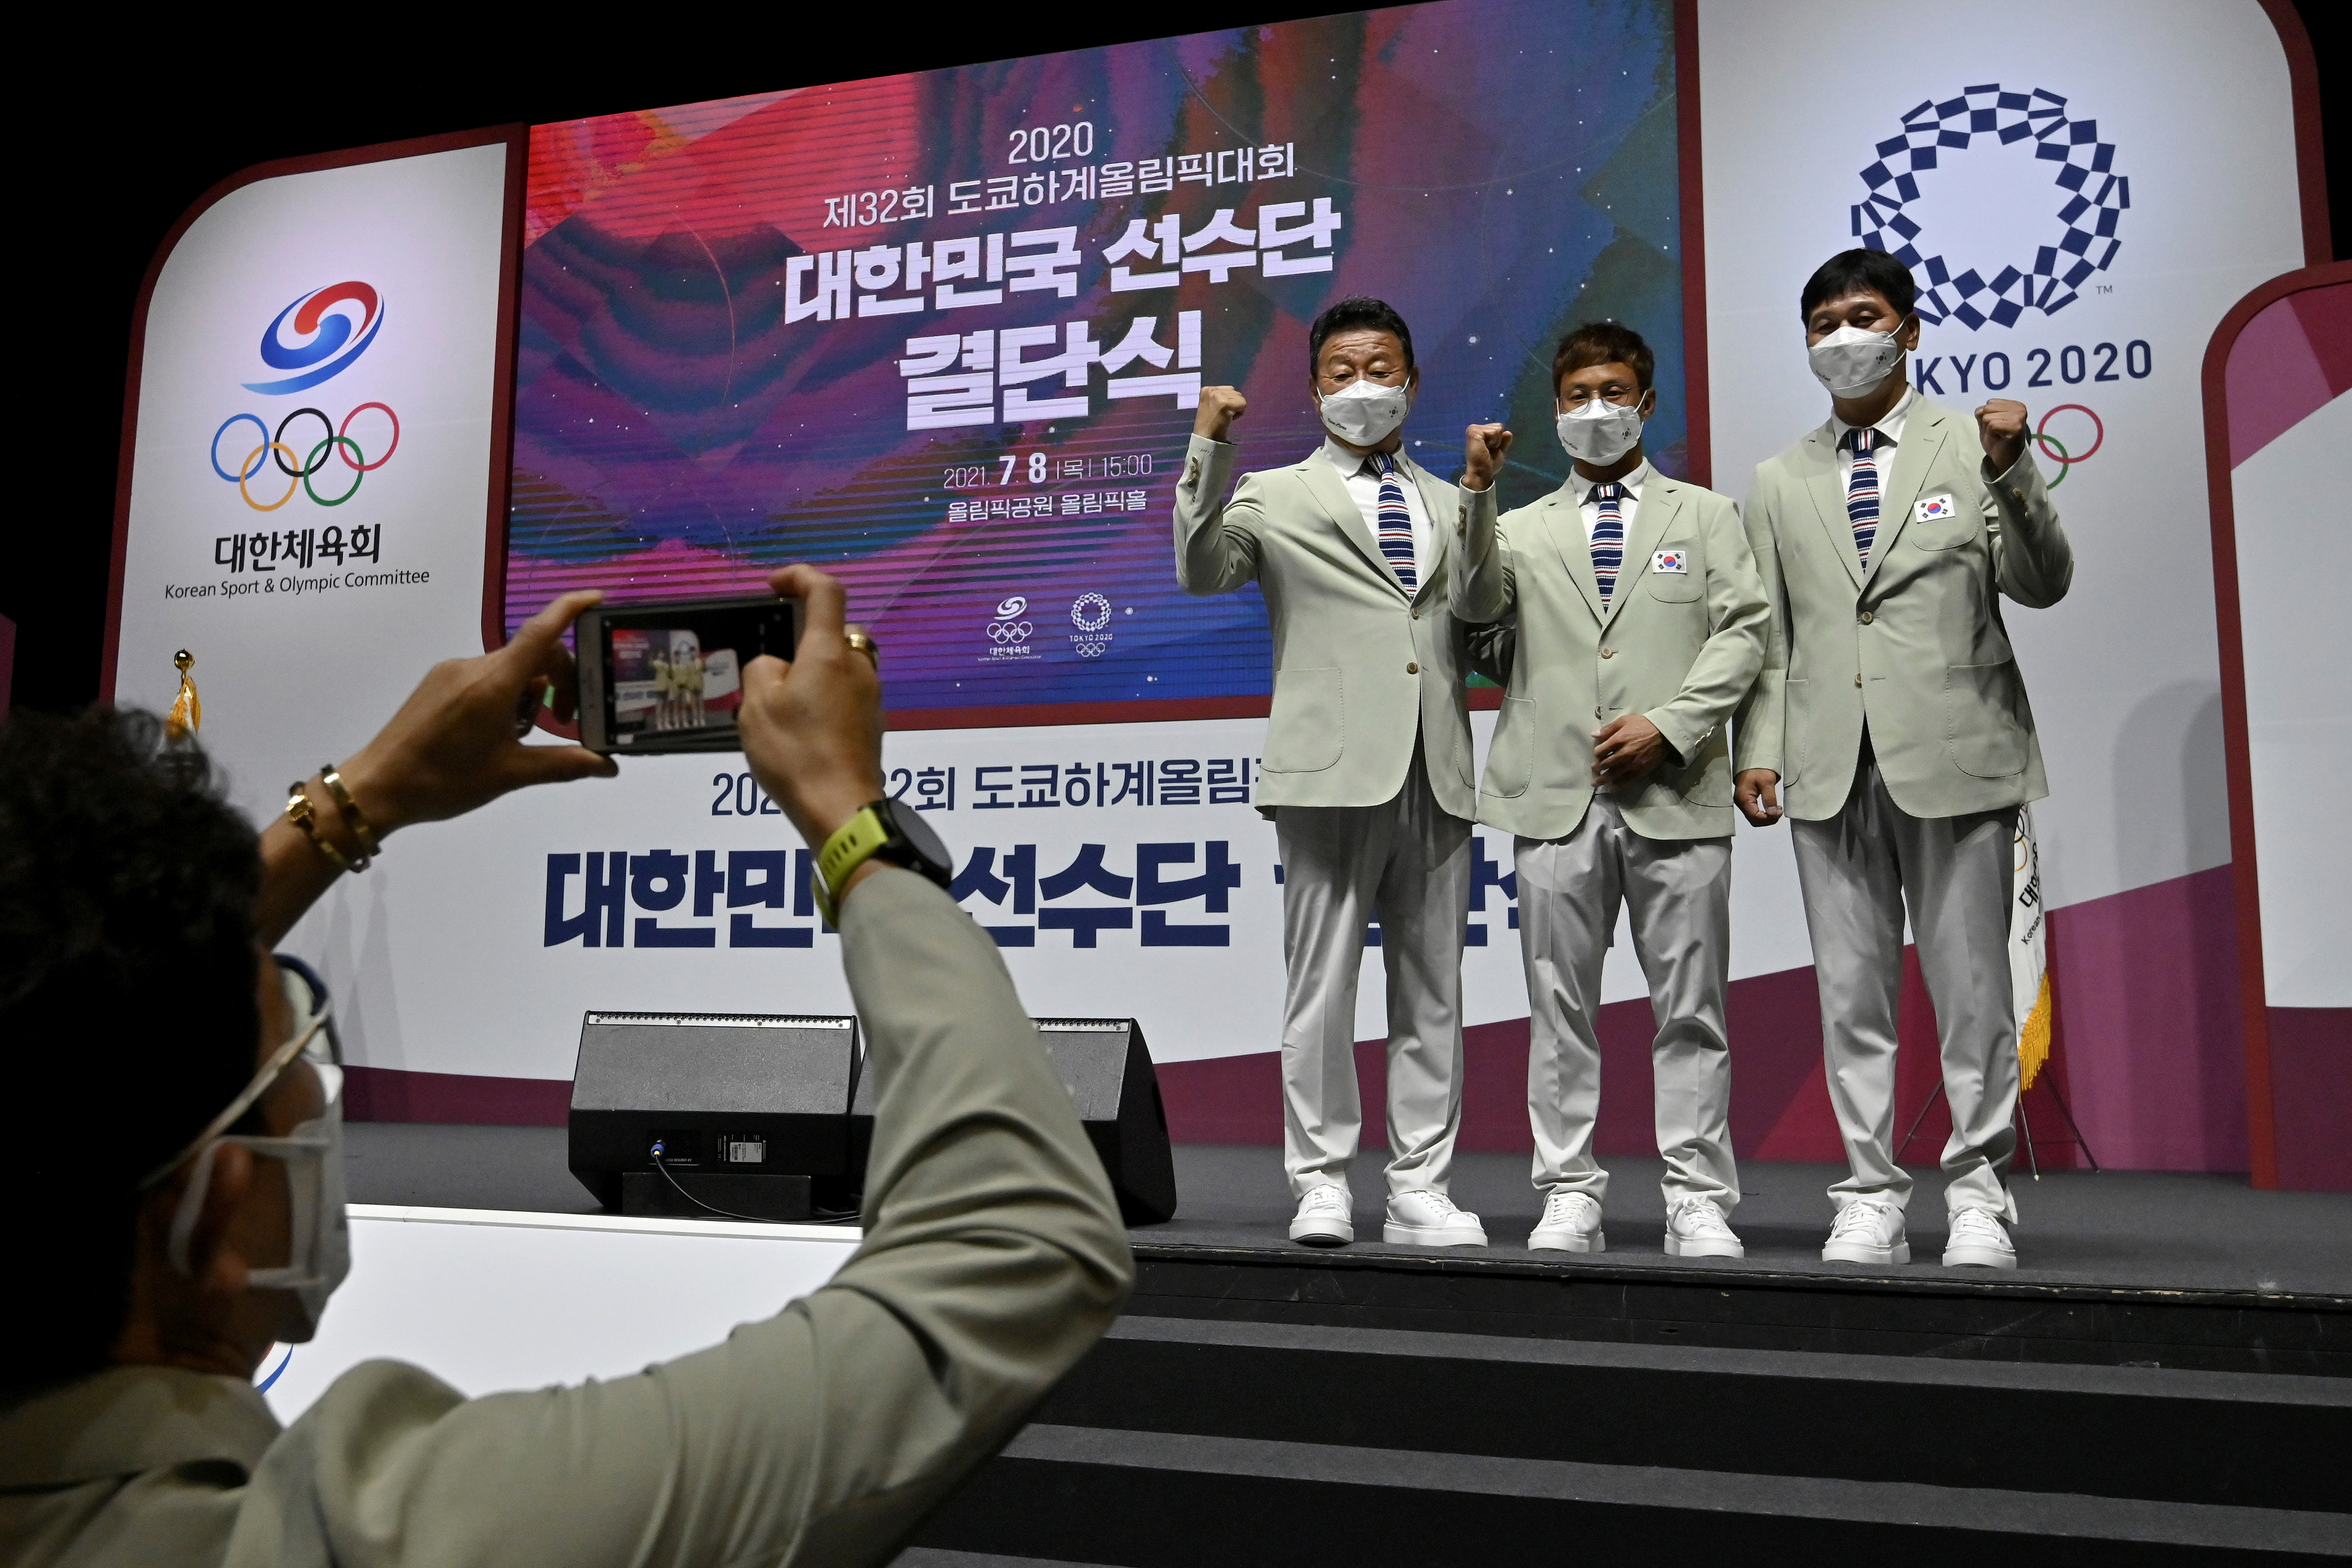 South Korean athletes pose for a photograph during an inaugural ceremony ahead of the departure of South Korea's Tokyo 2020 Olympic Games delegation for Japan, in Seoul, South Korea July 8, 2021. Jung Yeon-je/Pool via REUTERS